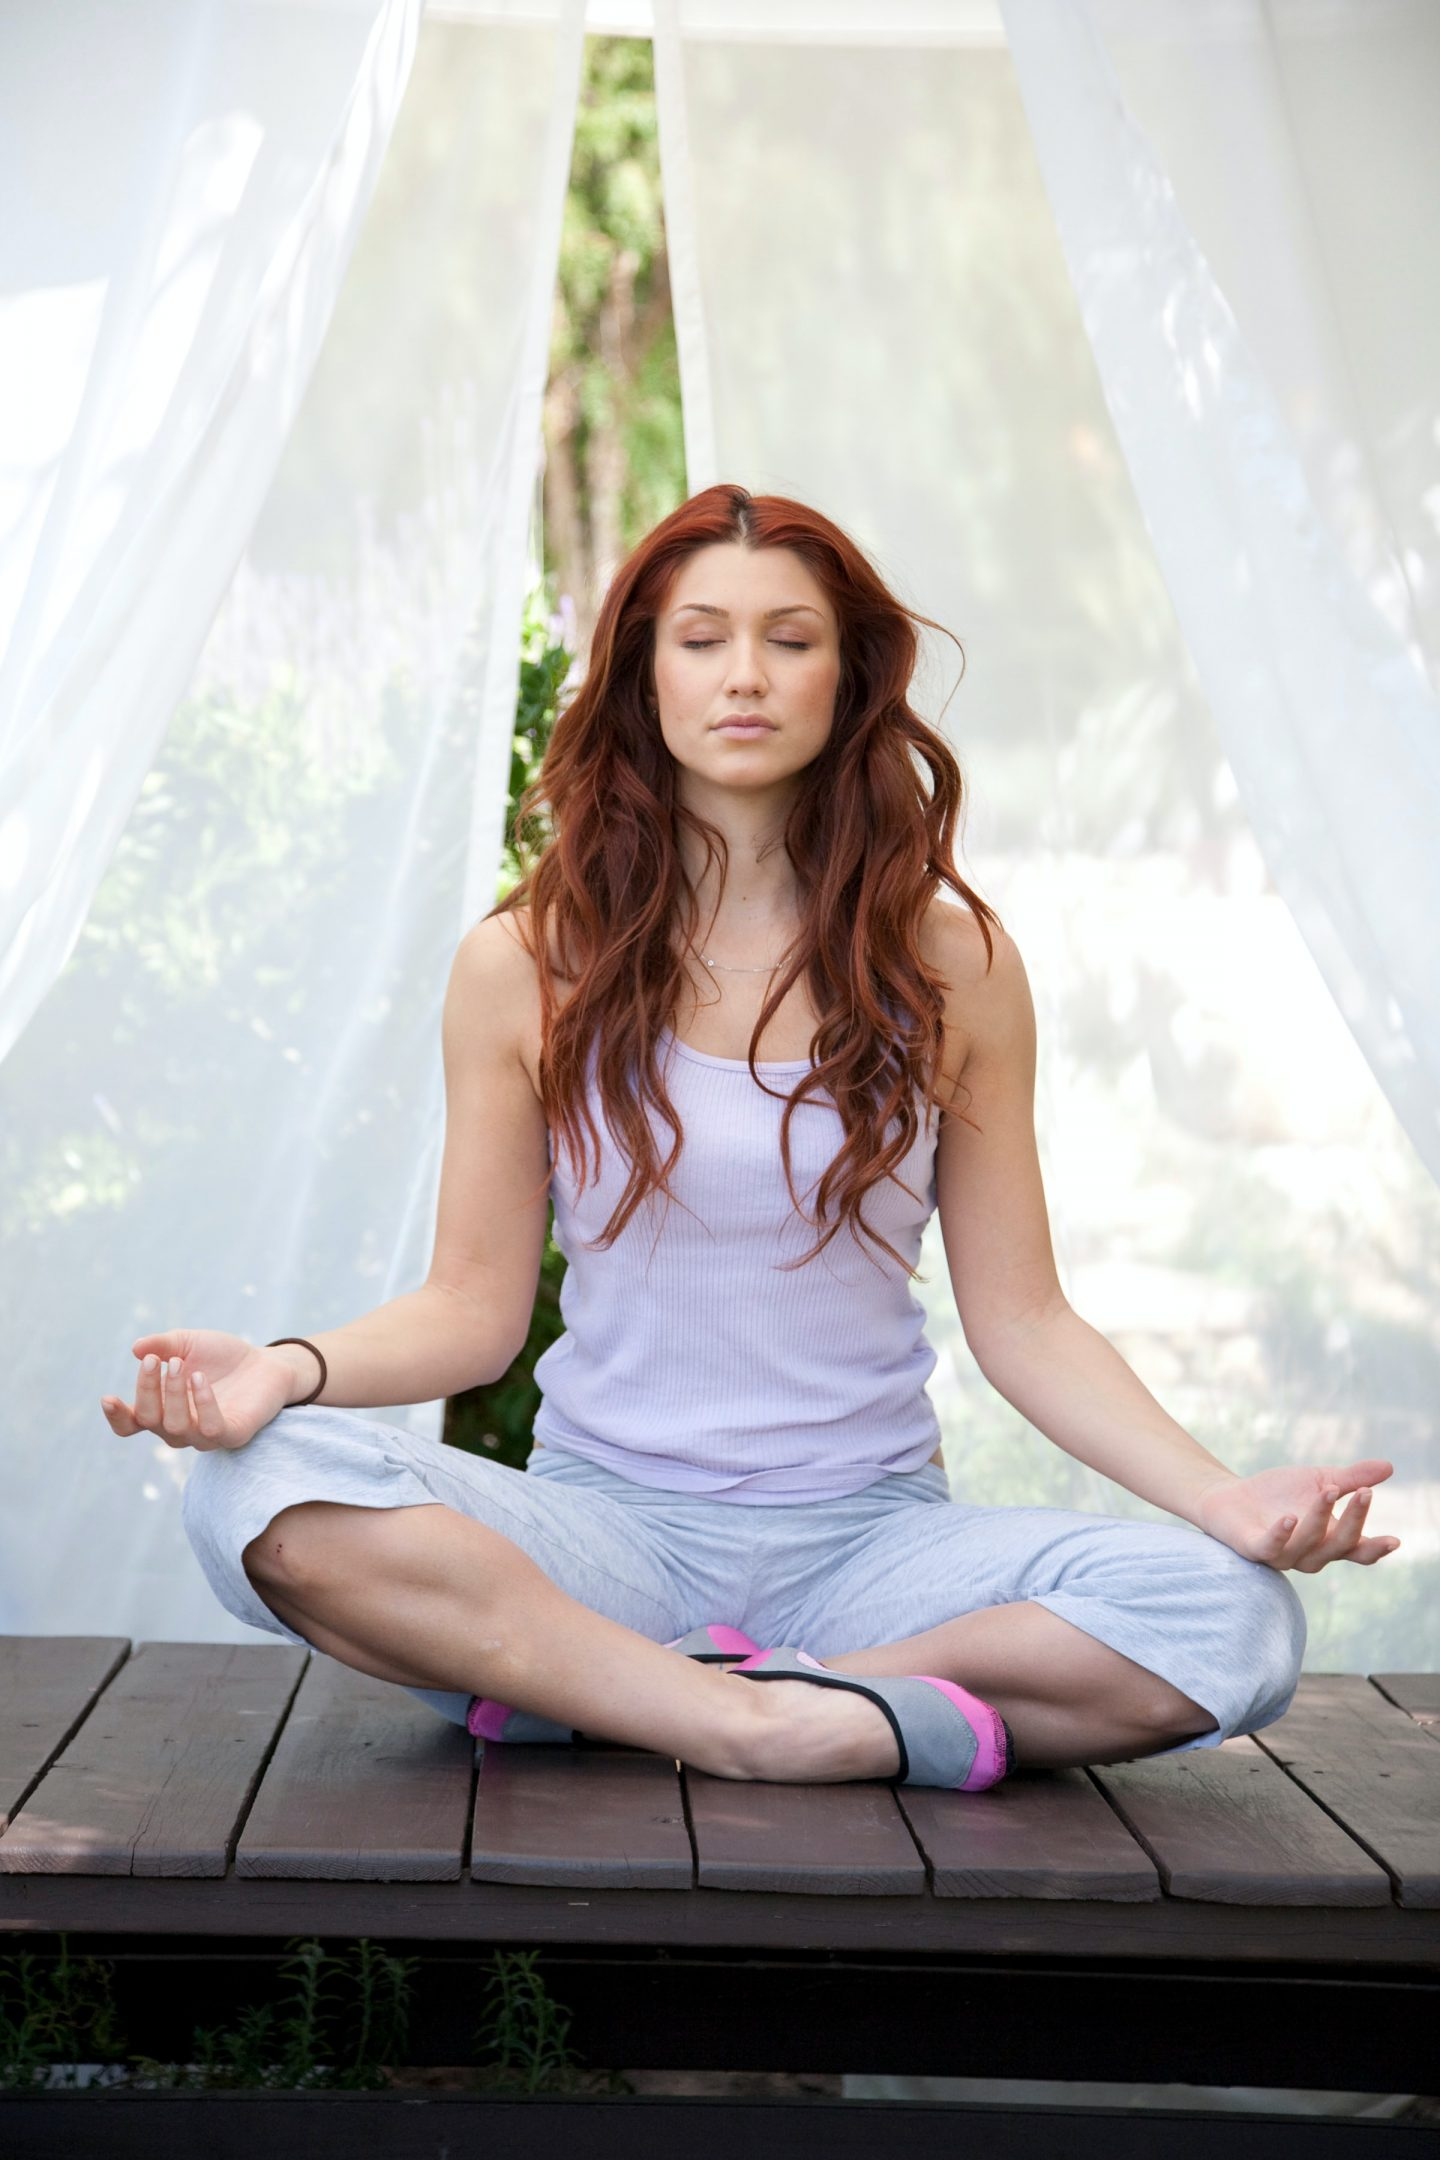 Woman meditating as part of her self care activities